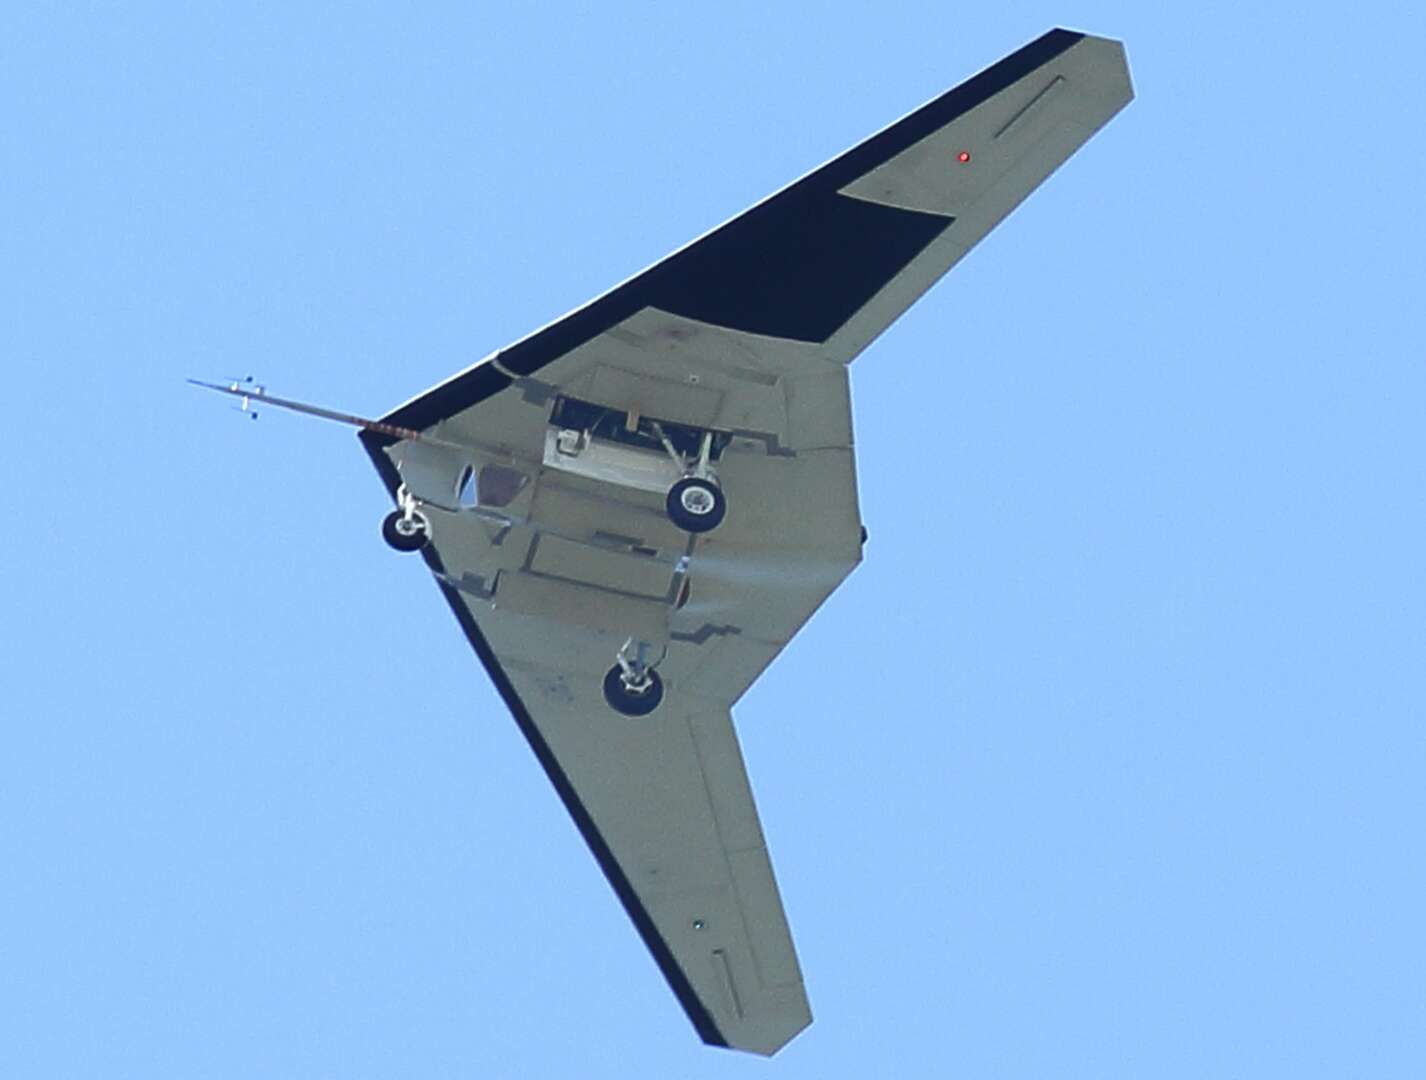 rq 170 stealth drone with Exclusive Uniquely Configured Rq 170 Stealth Spy Drone Appears At Vandenberg Afb on Details On New Classified Rq 180 Stealth Spy Drone Being Tested By Us Air Force At Area 51 further 7 together with Lockheed Martin SkunkWorks UAV Concept 295x180 together with Neuron Program  pletes Stealth Test Flights moreover Pg1.